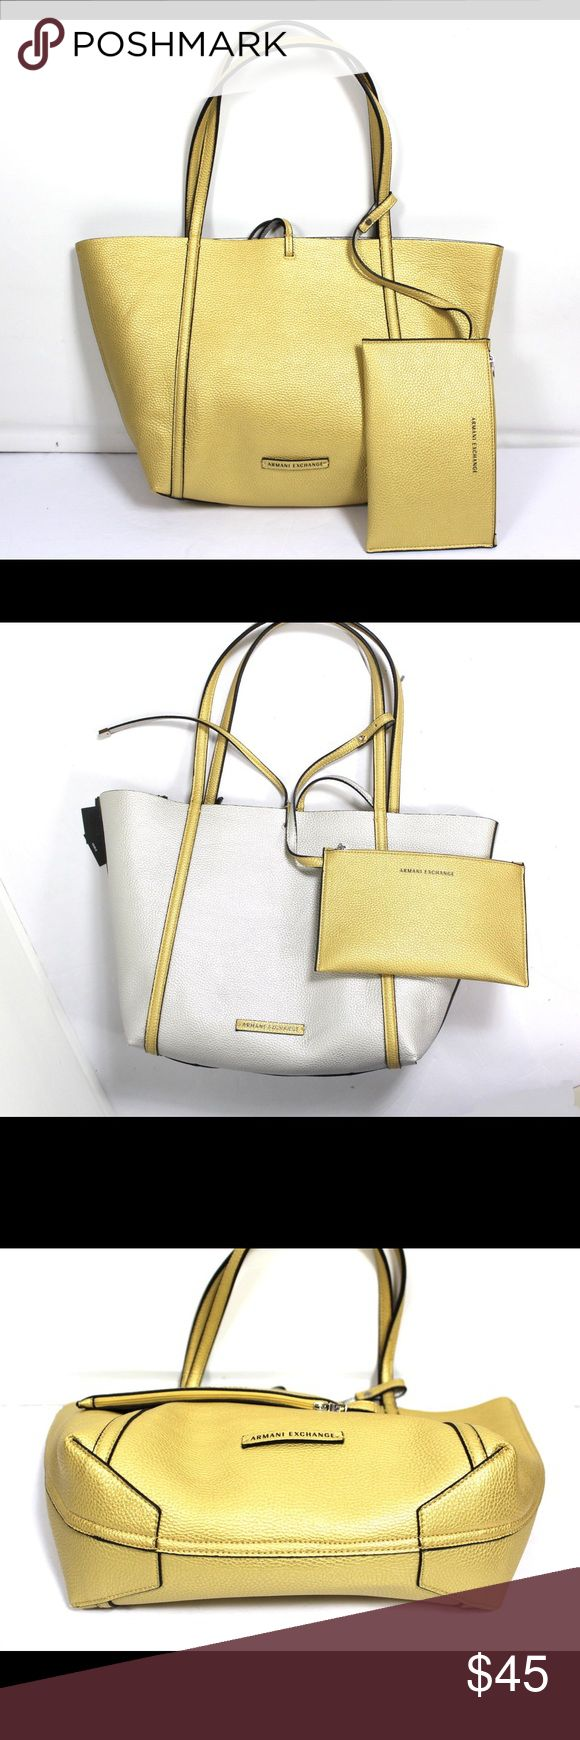 Armani Exchange Tote Beautiful Armani Exchange reversible golden and silver tote. 100% polyurethane/ Faux Leather...New Armani Exchange Bags Totes